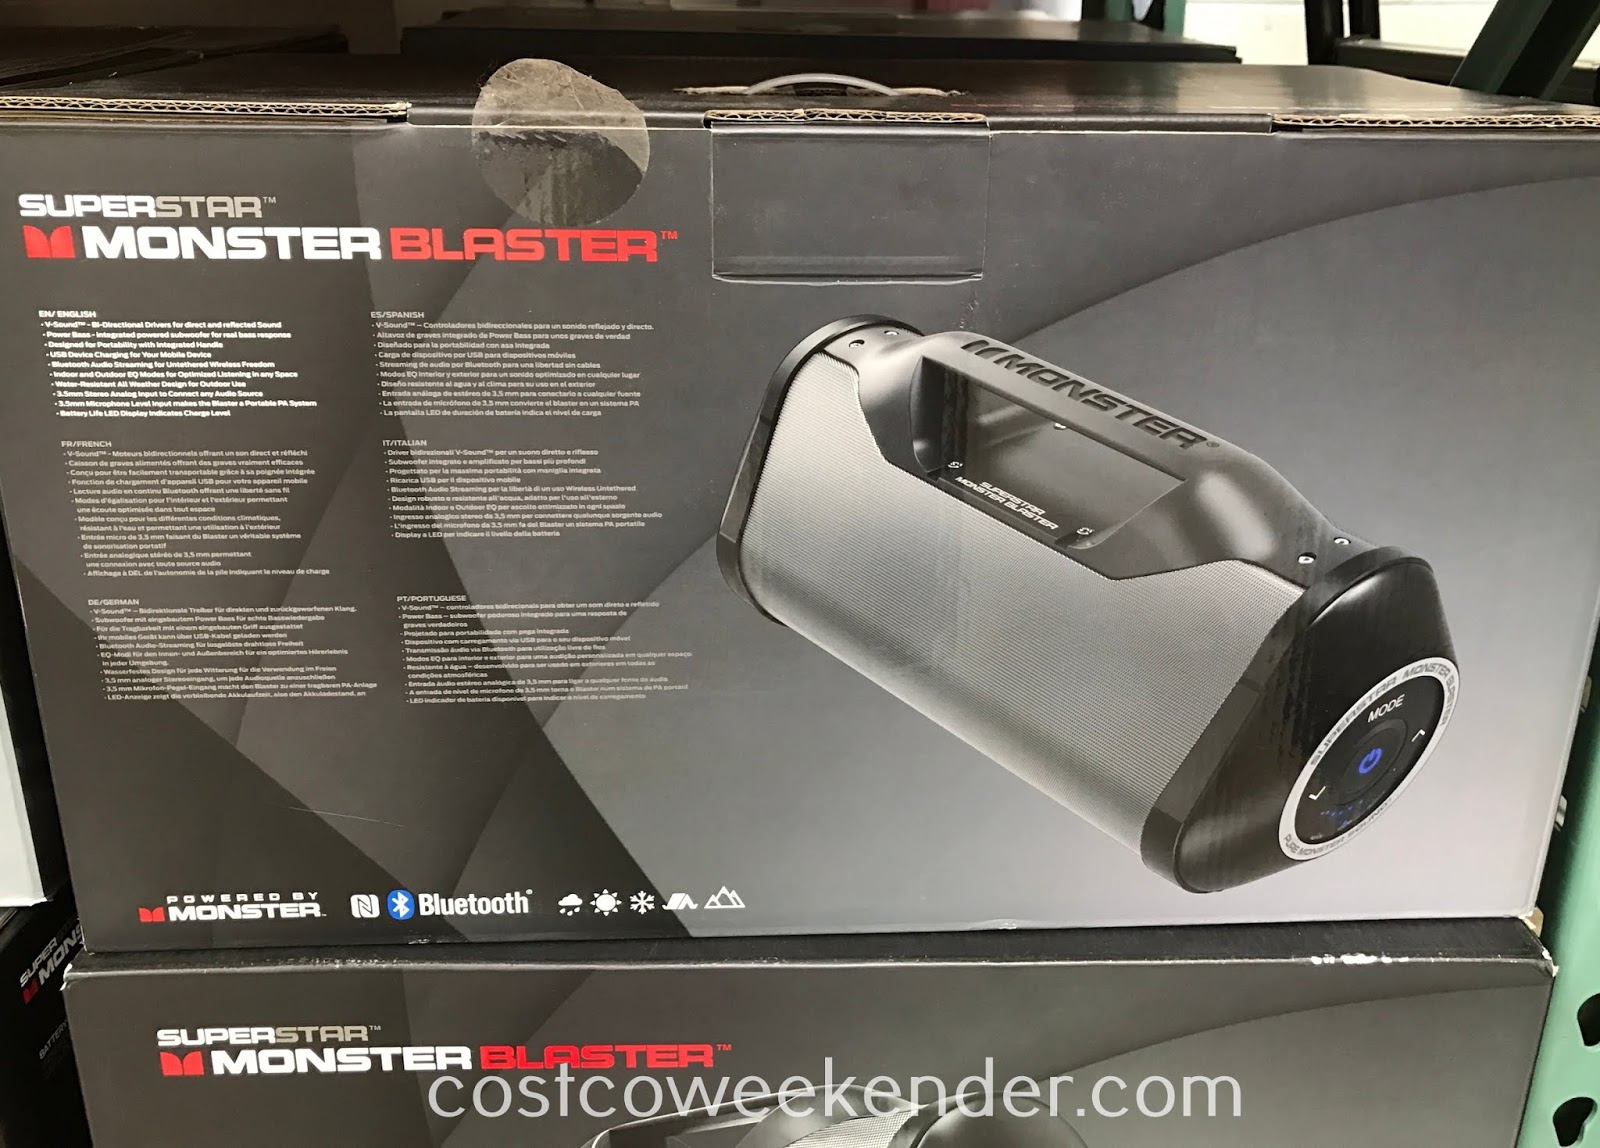 Costco 8696000 - Taking and listening to your music with you on the go just got easier with the Superstar Monster Blaster Speaker